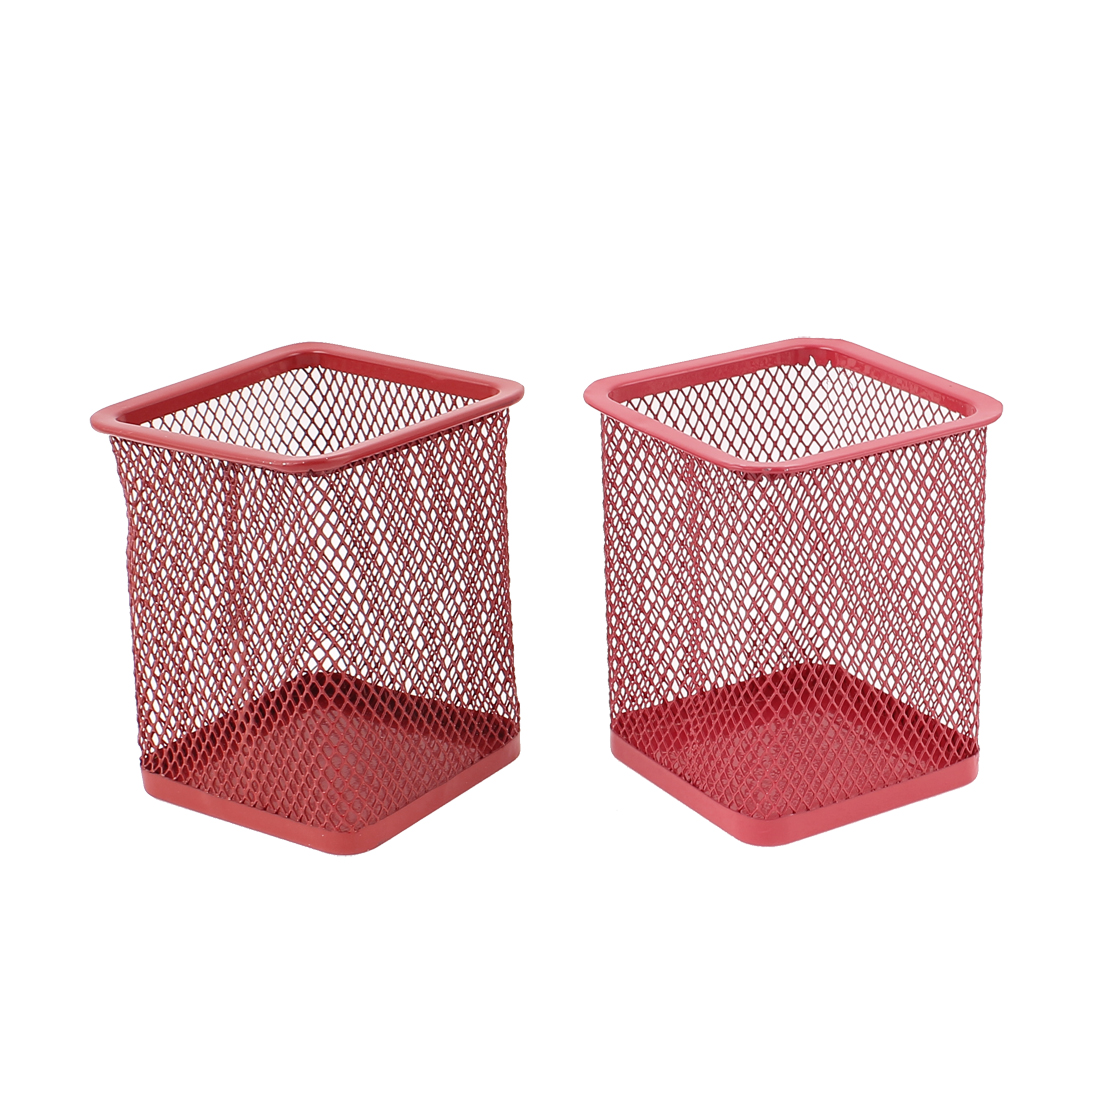 Metallic Mesh Office Desk Stationery Pen Holder Box Container Red 2Pcs